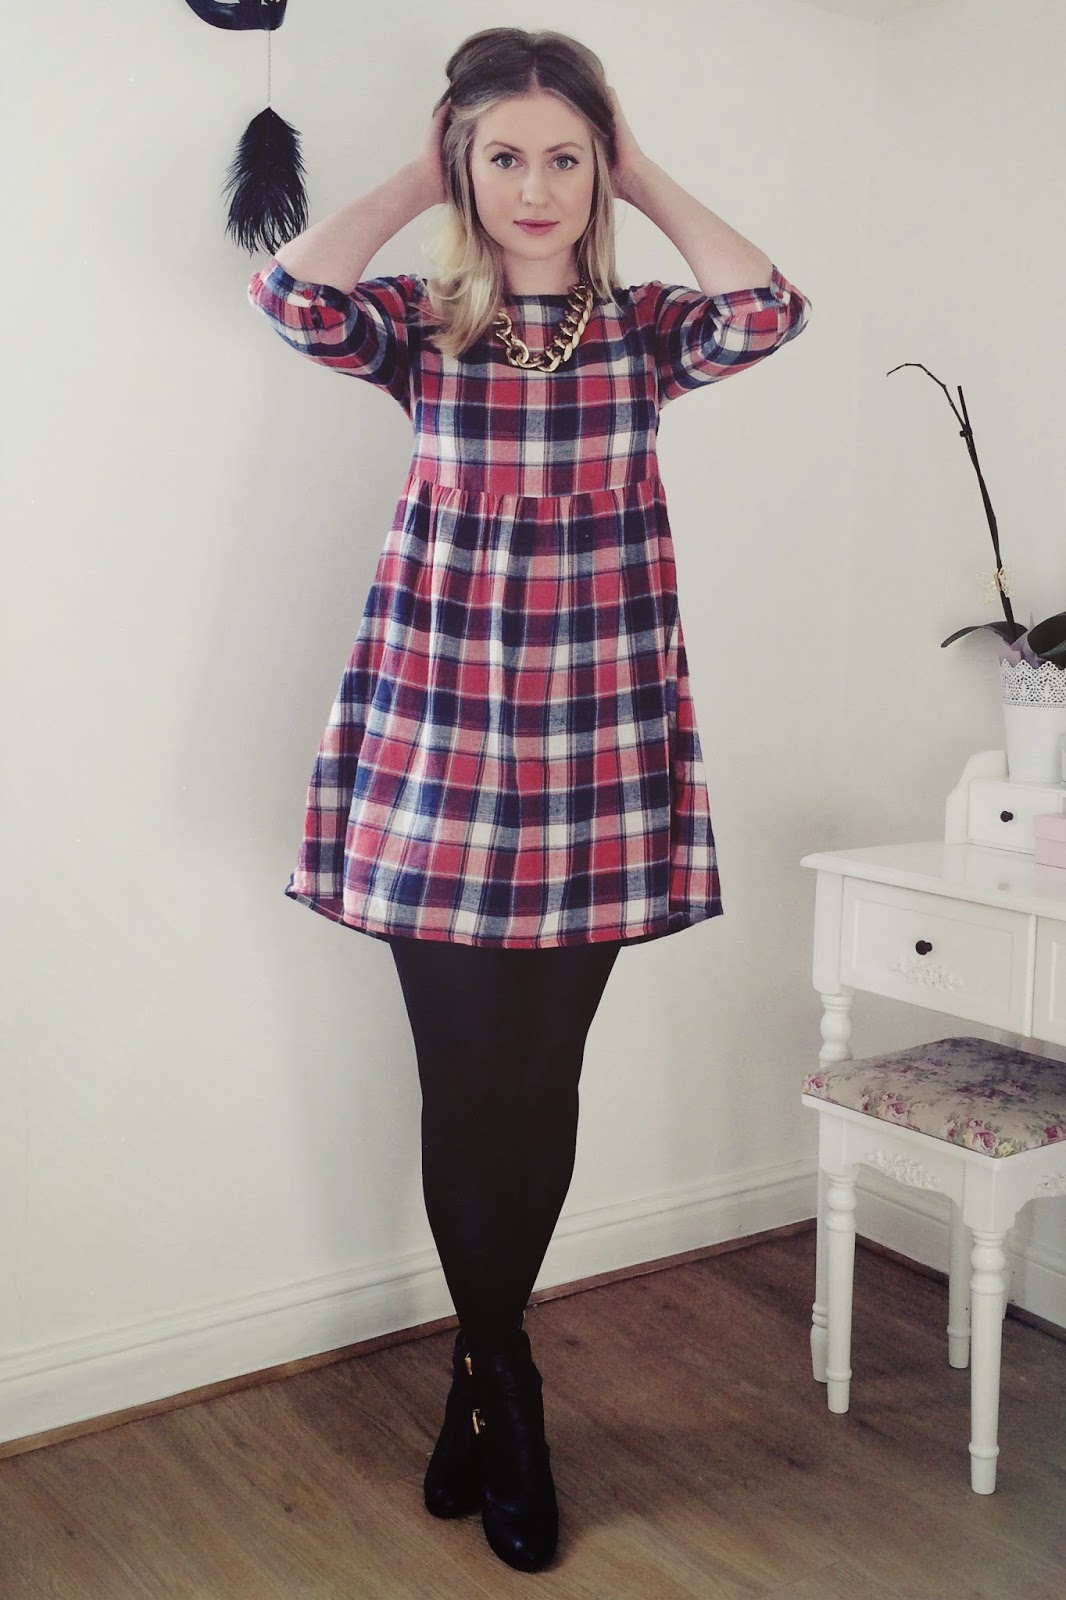 FashionFake, fashion bloggers, UK fashion blog, Primark tartan dress